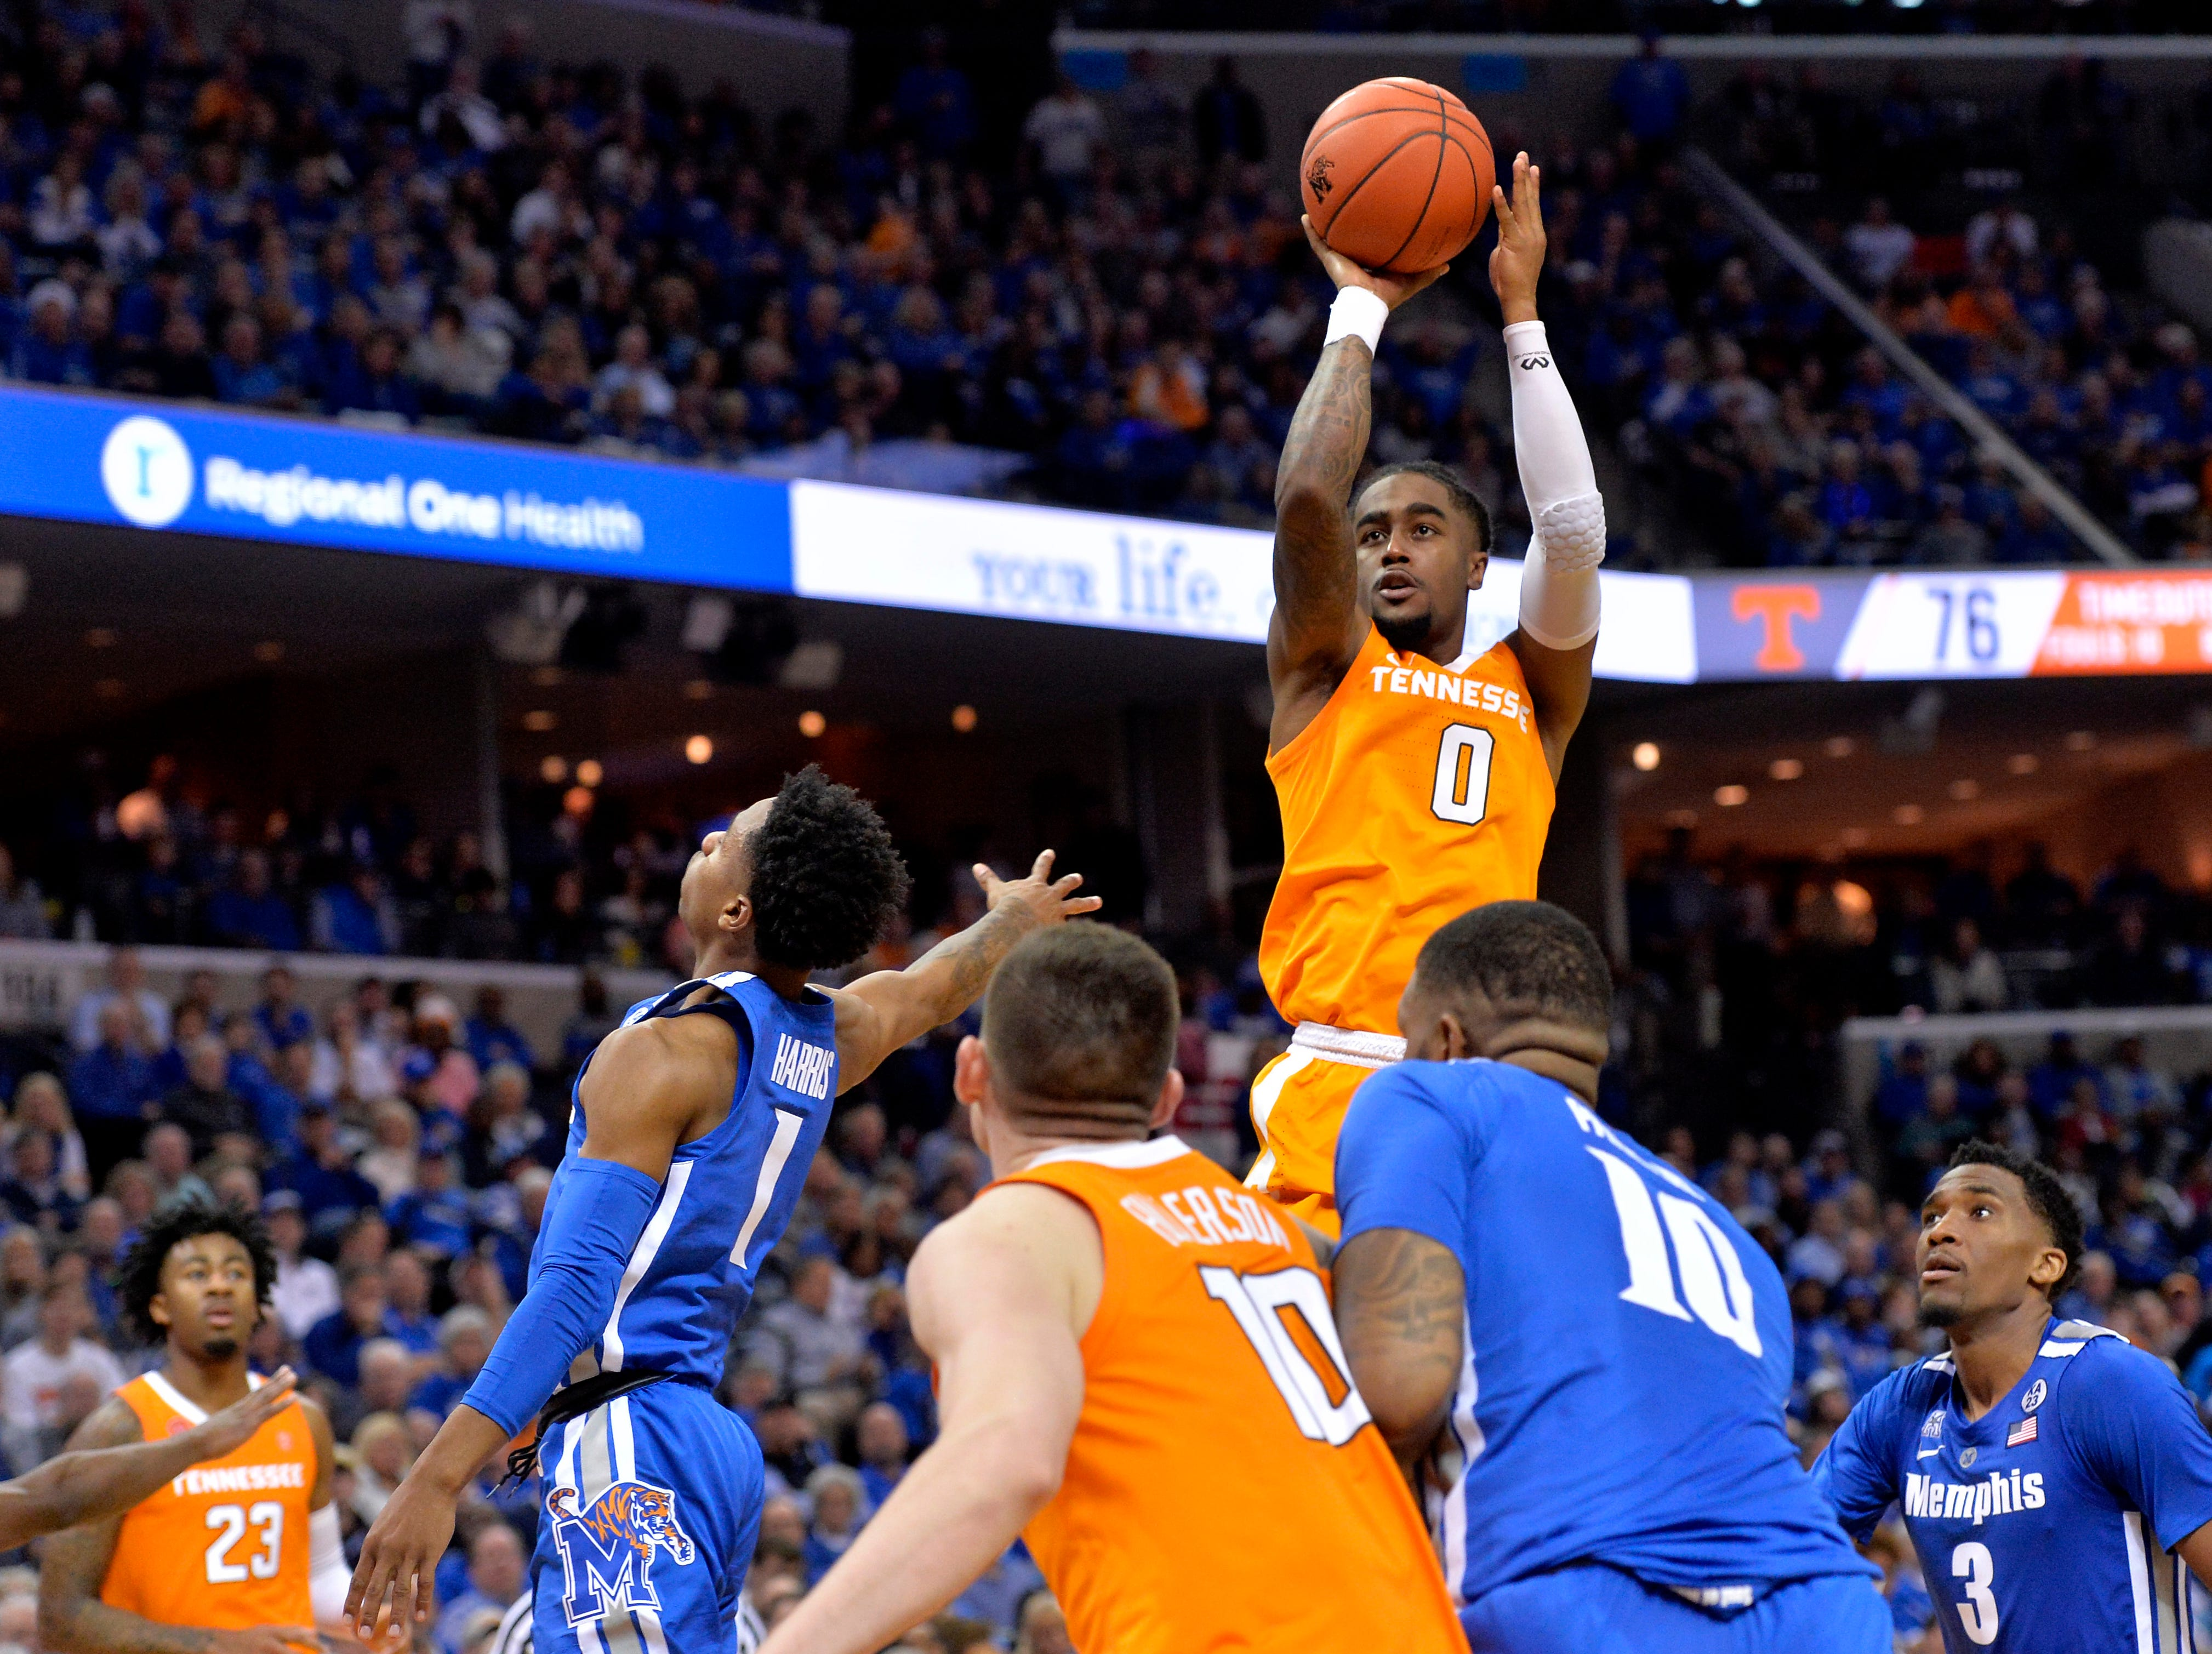 Tennessee guard Jordan Bone (0) shoots between Memphis guards Tyler Harris (1) and Jeremiah Martin (3) in the second half of an NCAA college basketball game Saturday, Dec. 15, 2018, in Memphis, Tenn.